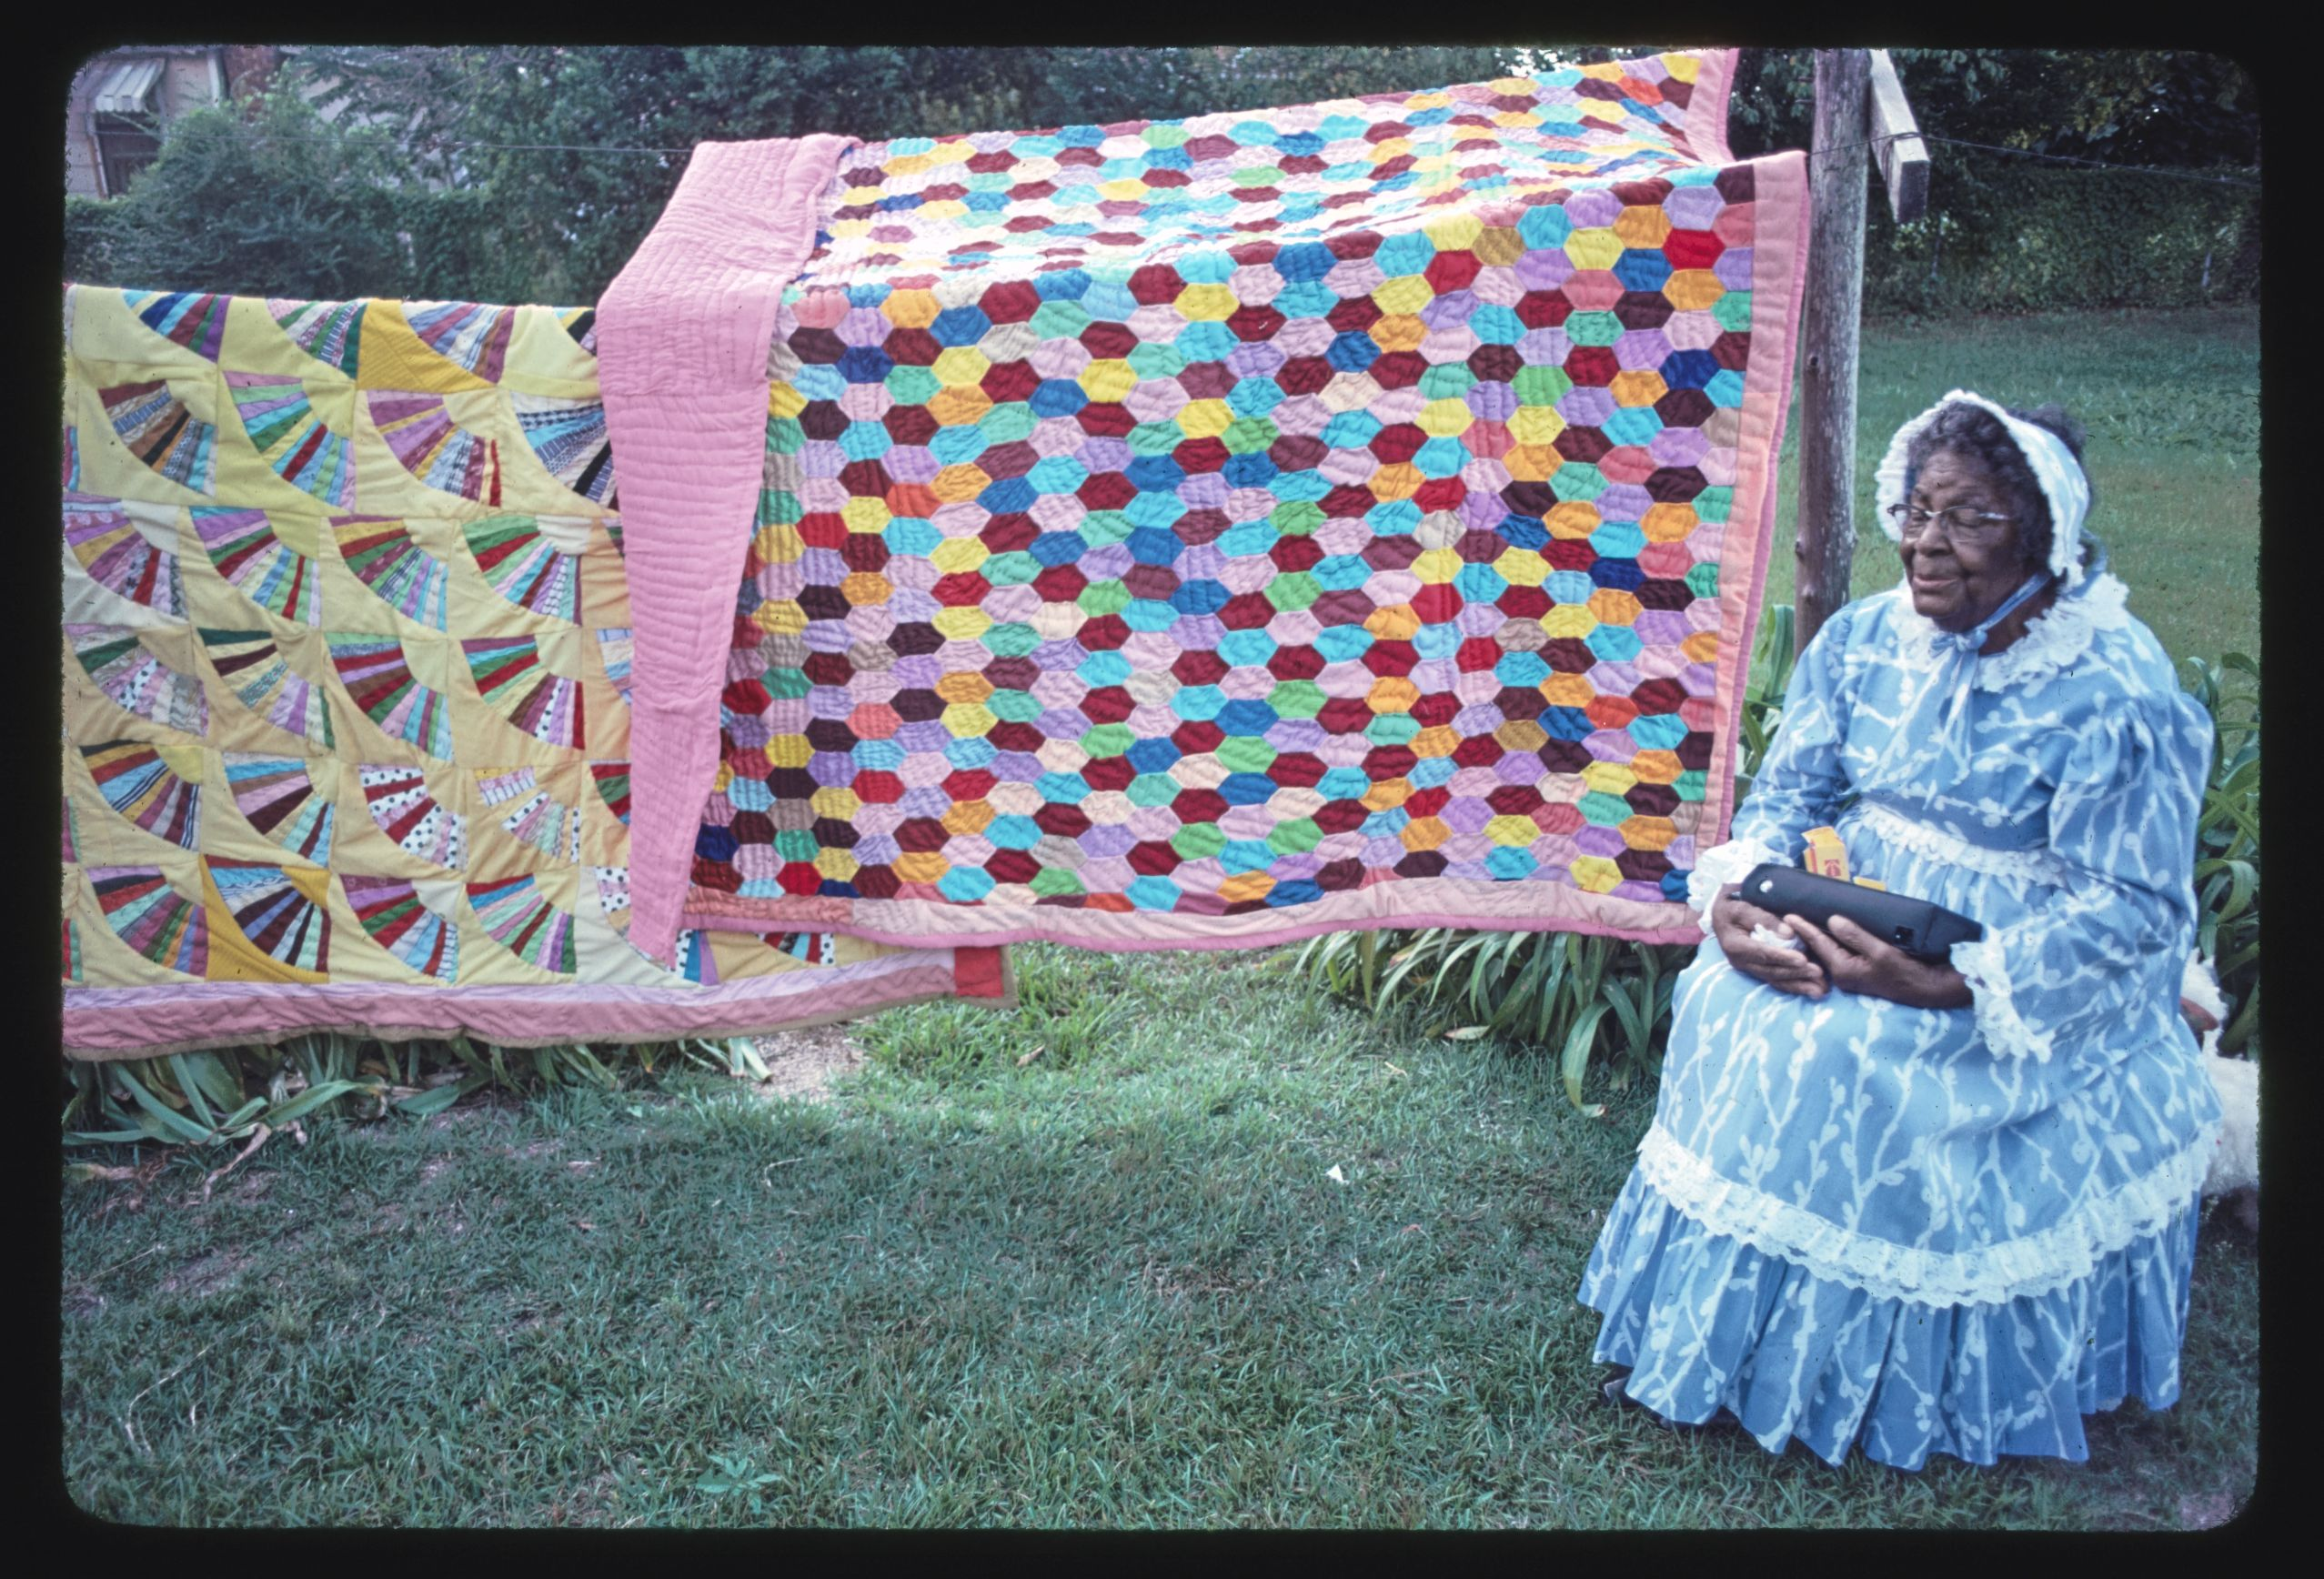 Mrs. Fannie Lee Teals, quilting, Tifton, Georgia